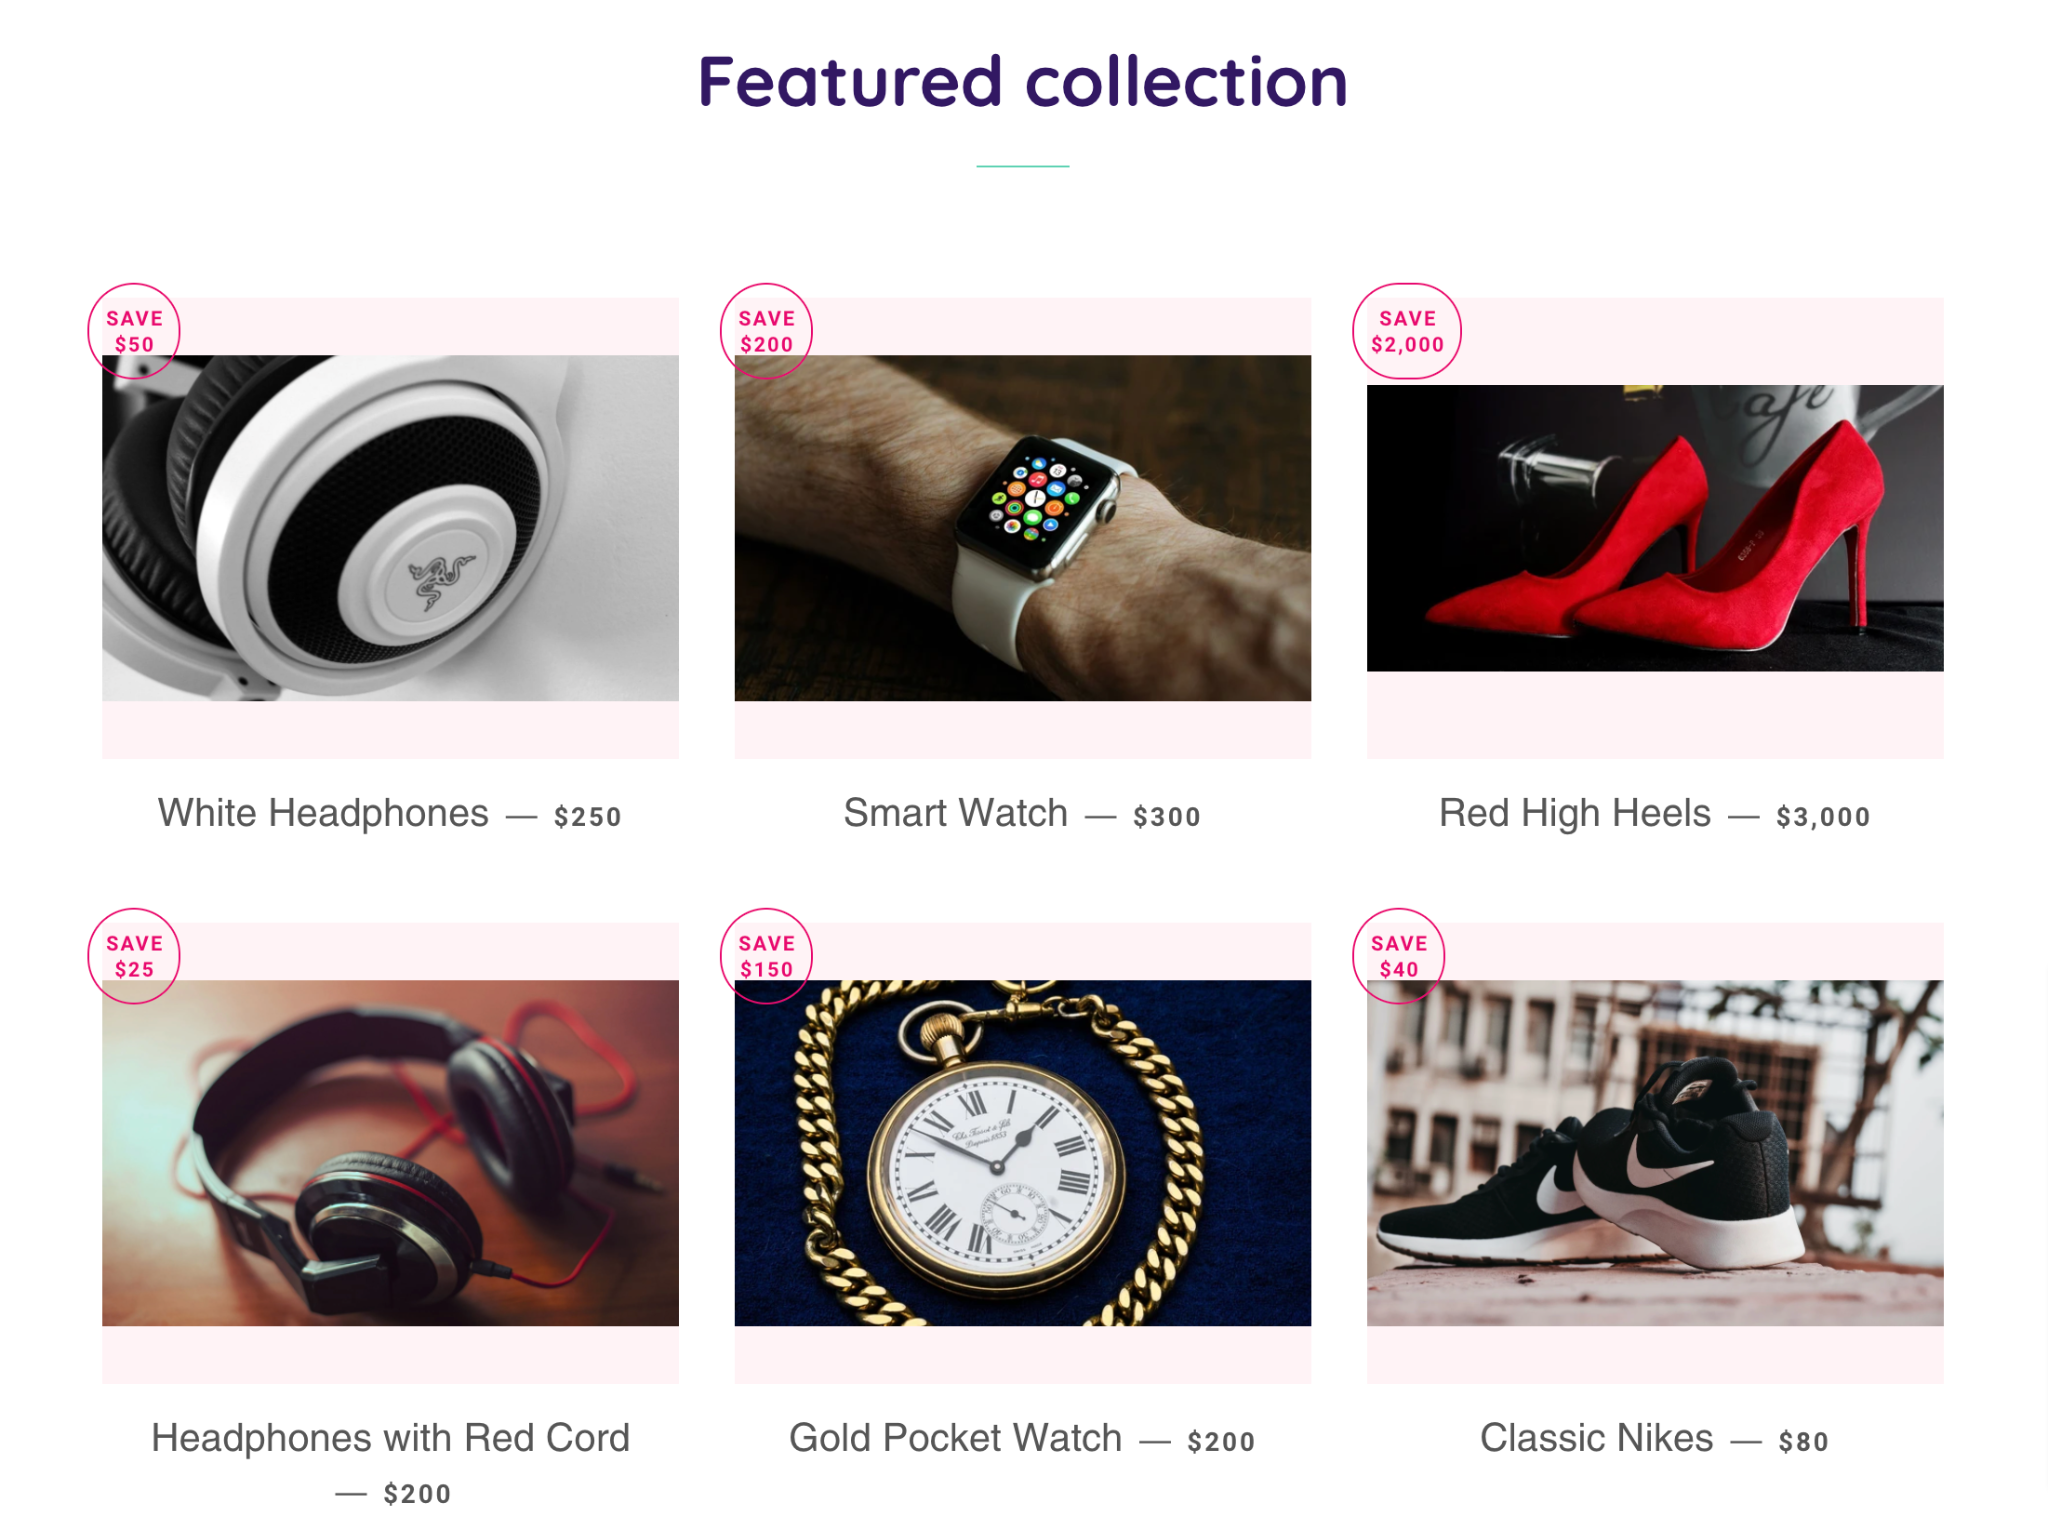 shopify dashboard traditional grid pattern collection